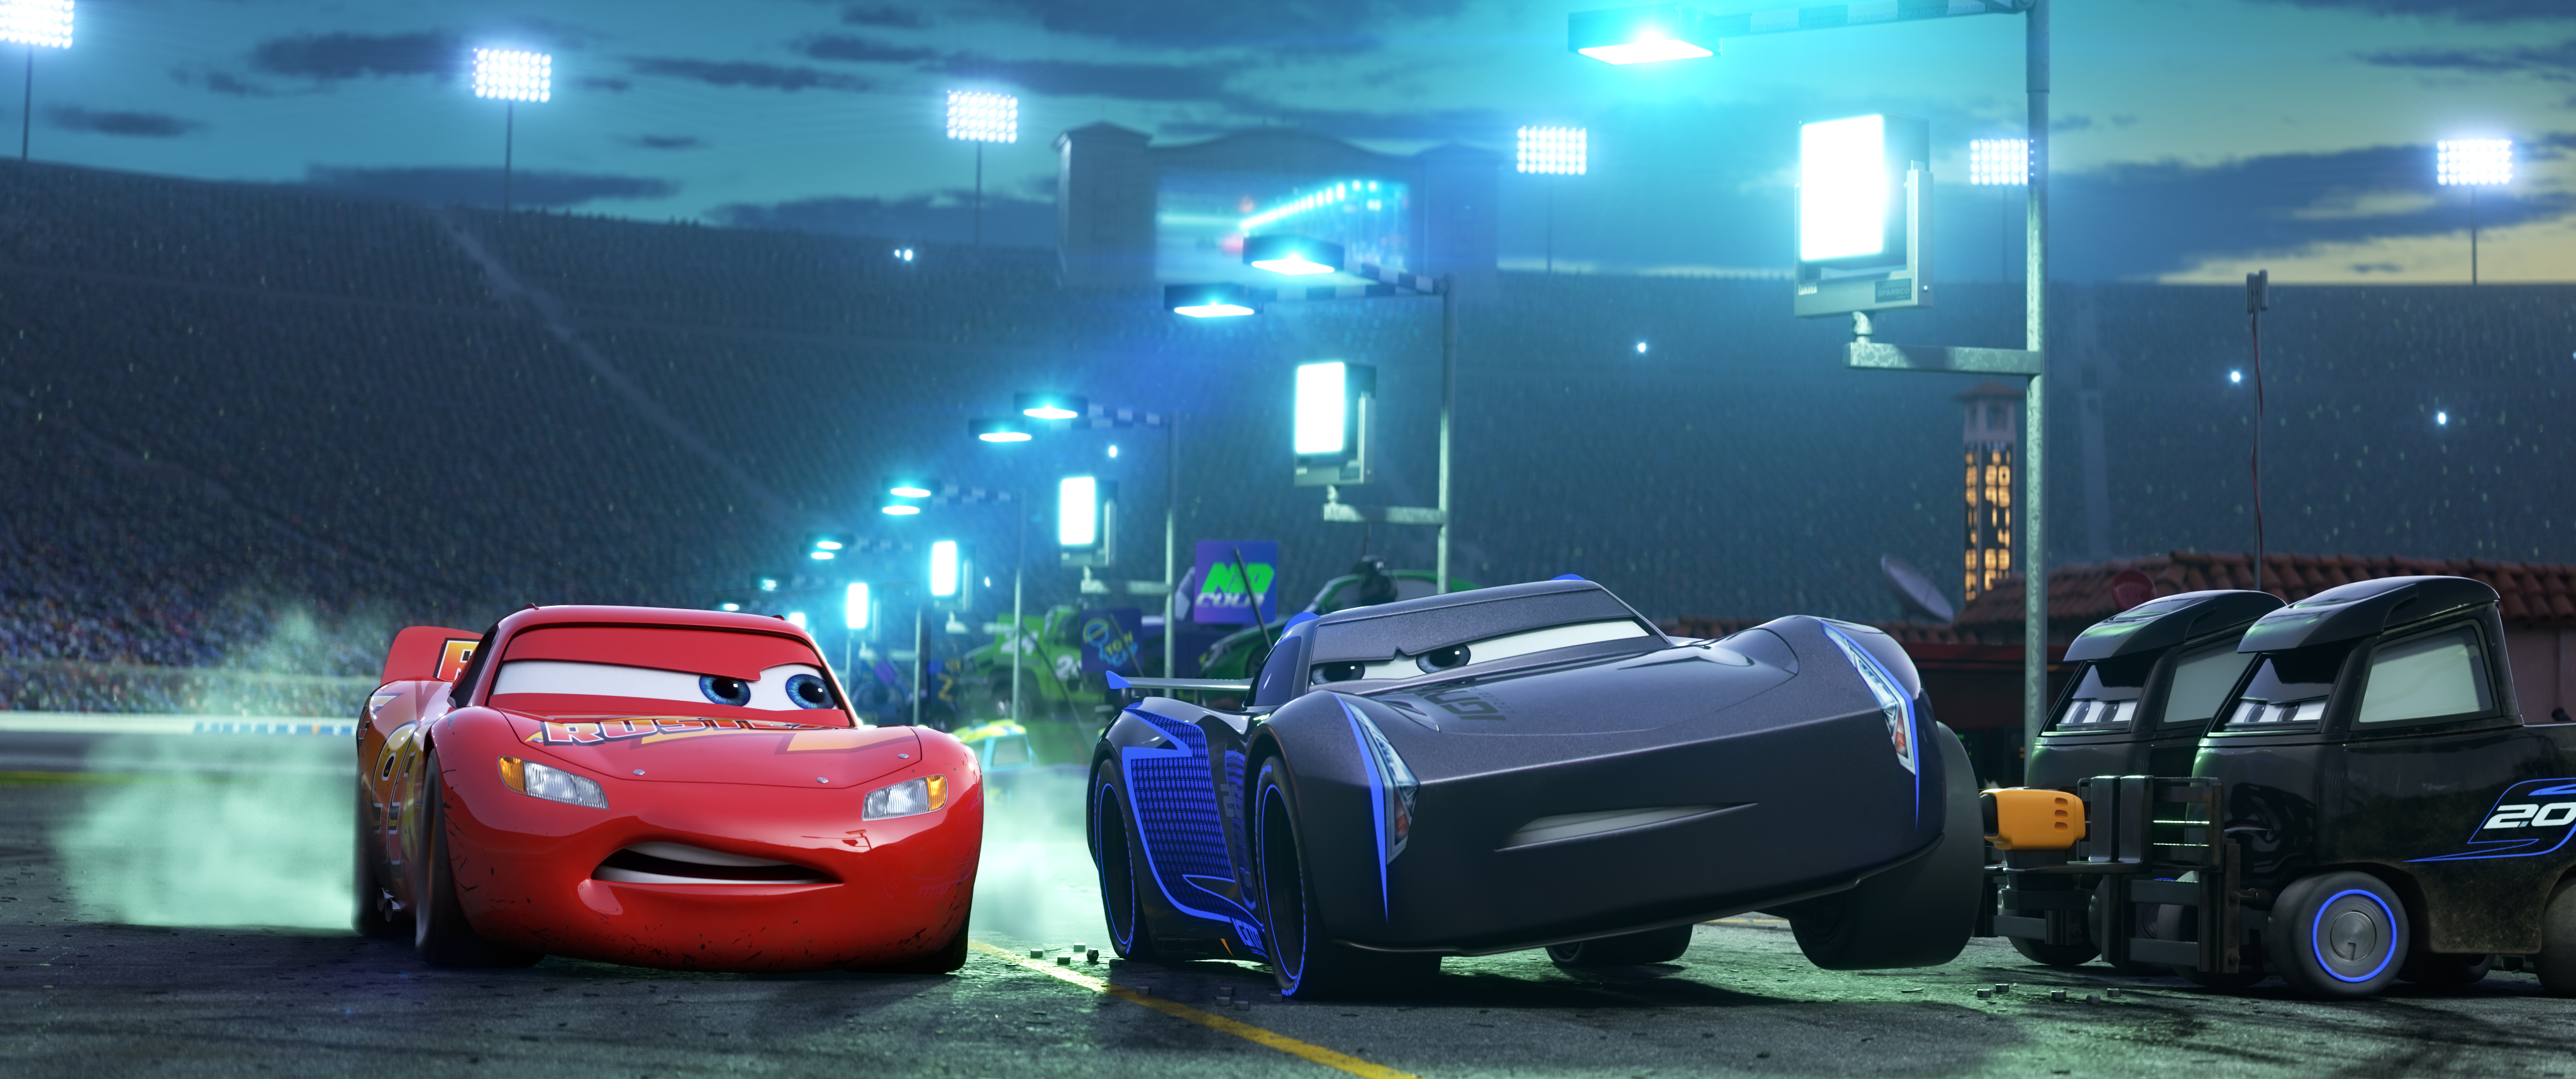 Pixar Pushed Technology to Paint the Cars in 'Cars 3' - The Walt